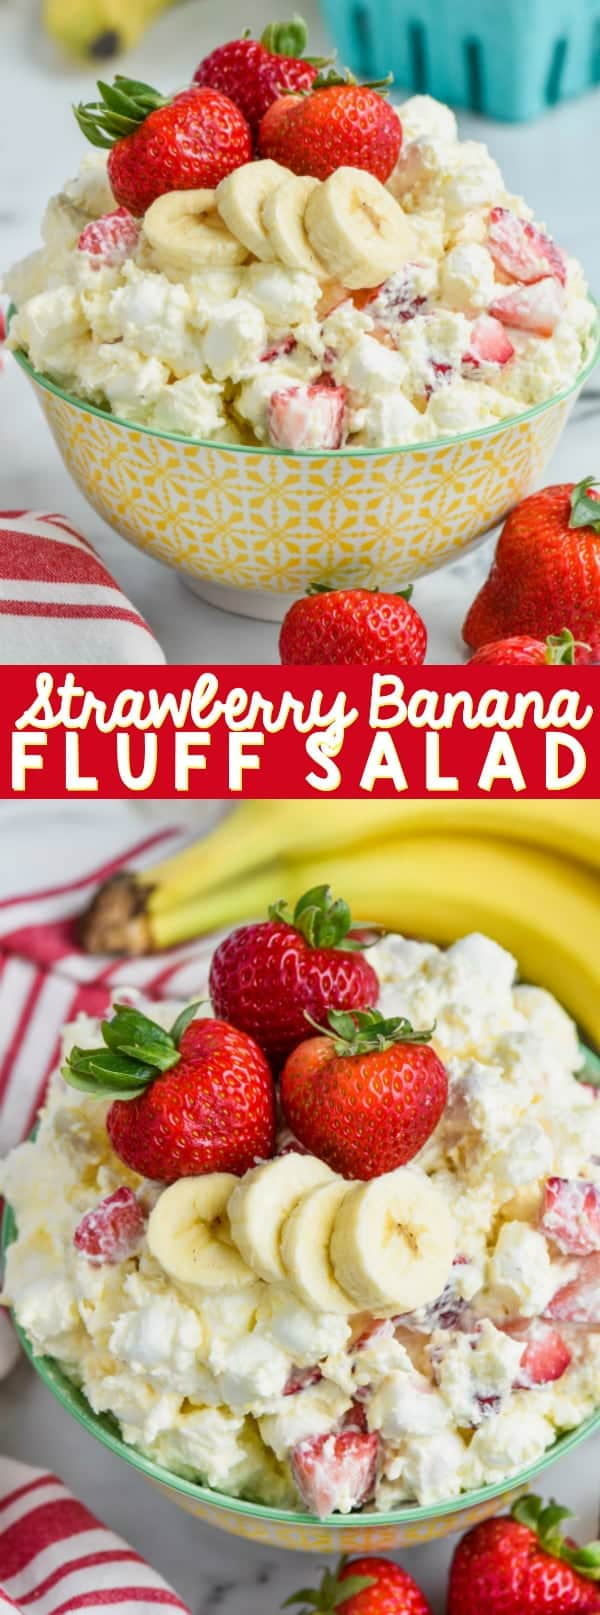 collage of strawberry banana fluff salad recipe